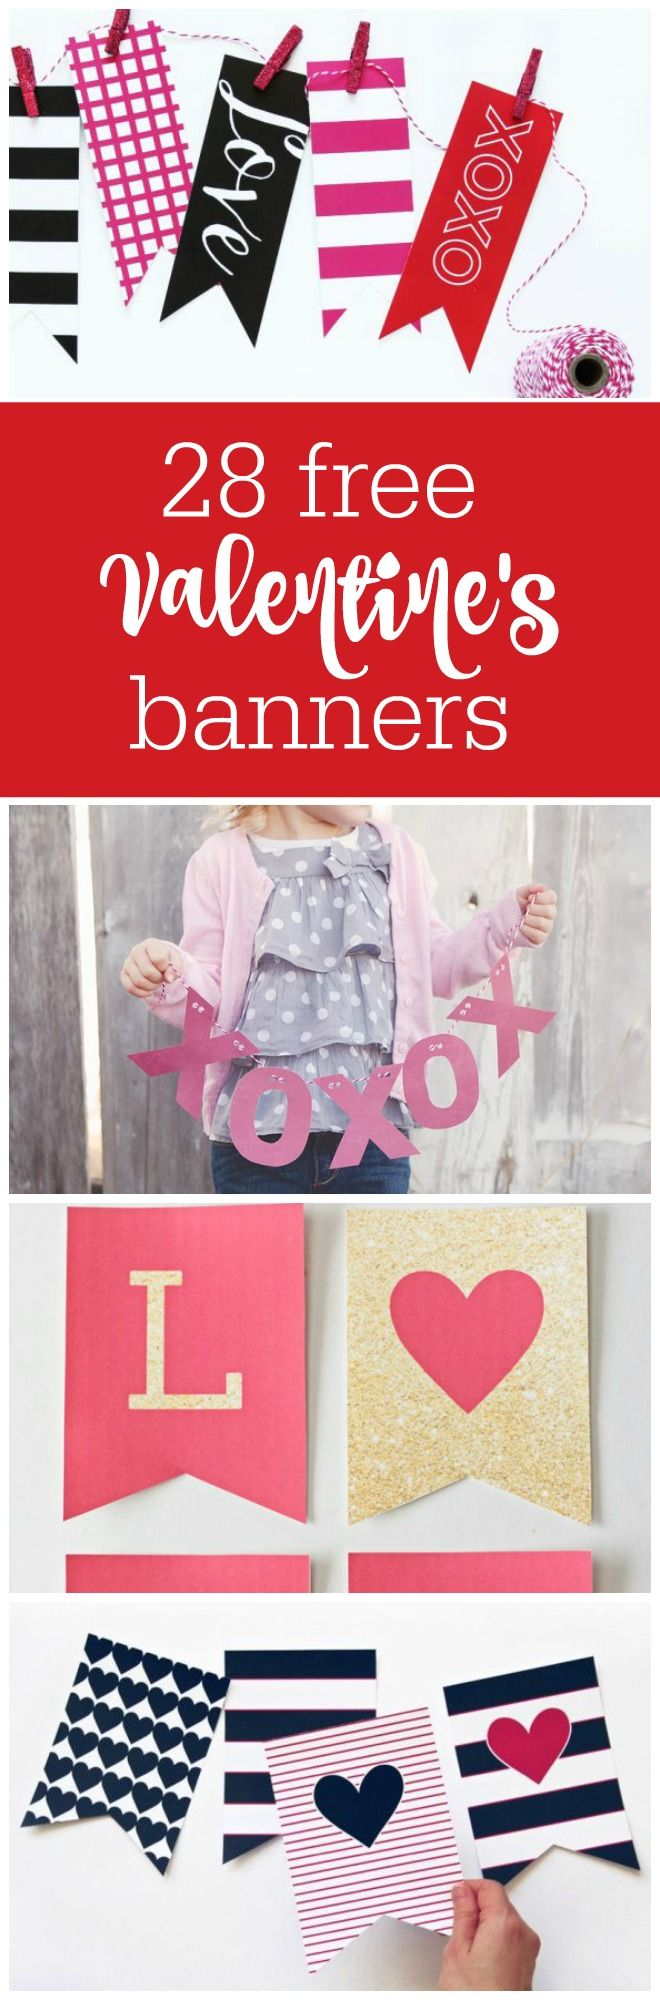 Freebie Friday: 28 Free Valentine's Printable Banners | These are wonderful ideas for Valentine's Day decor